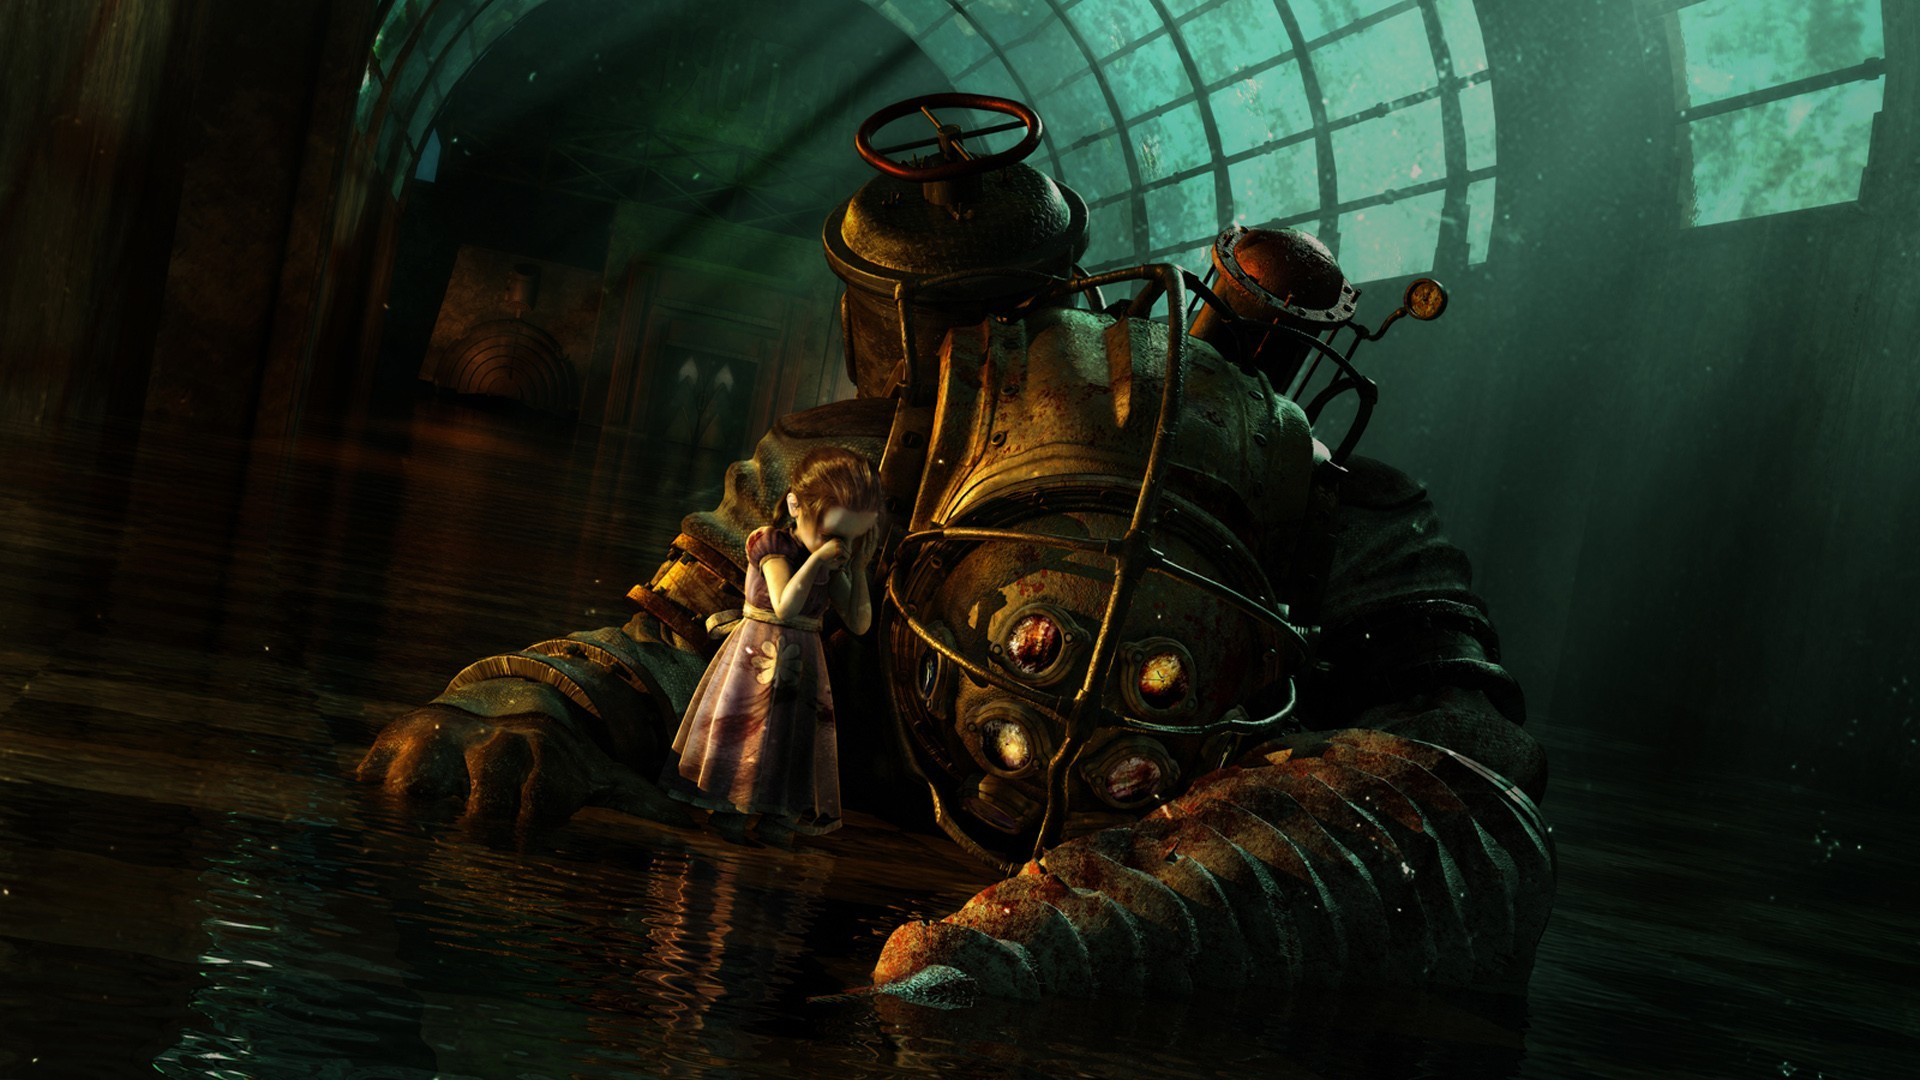 Bioshock big daddy wallpaper wallpapersafari for Big daddy s antiques